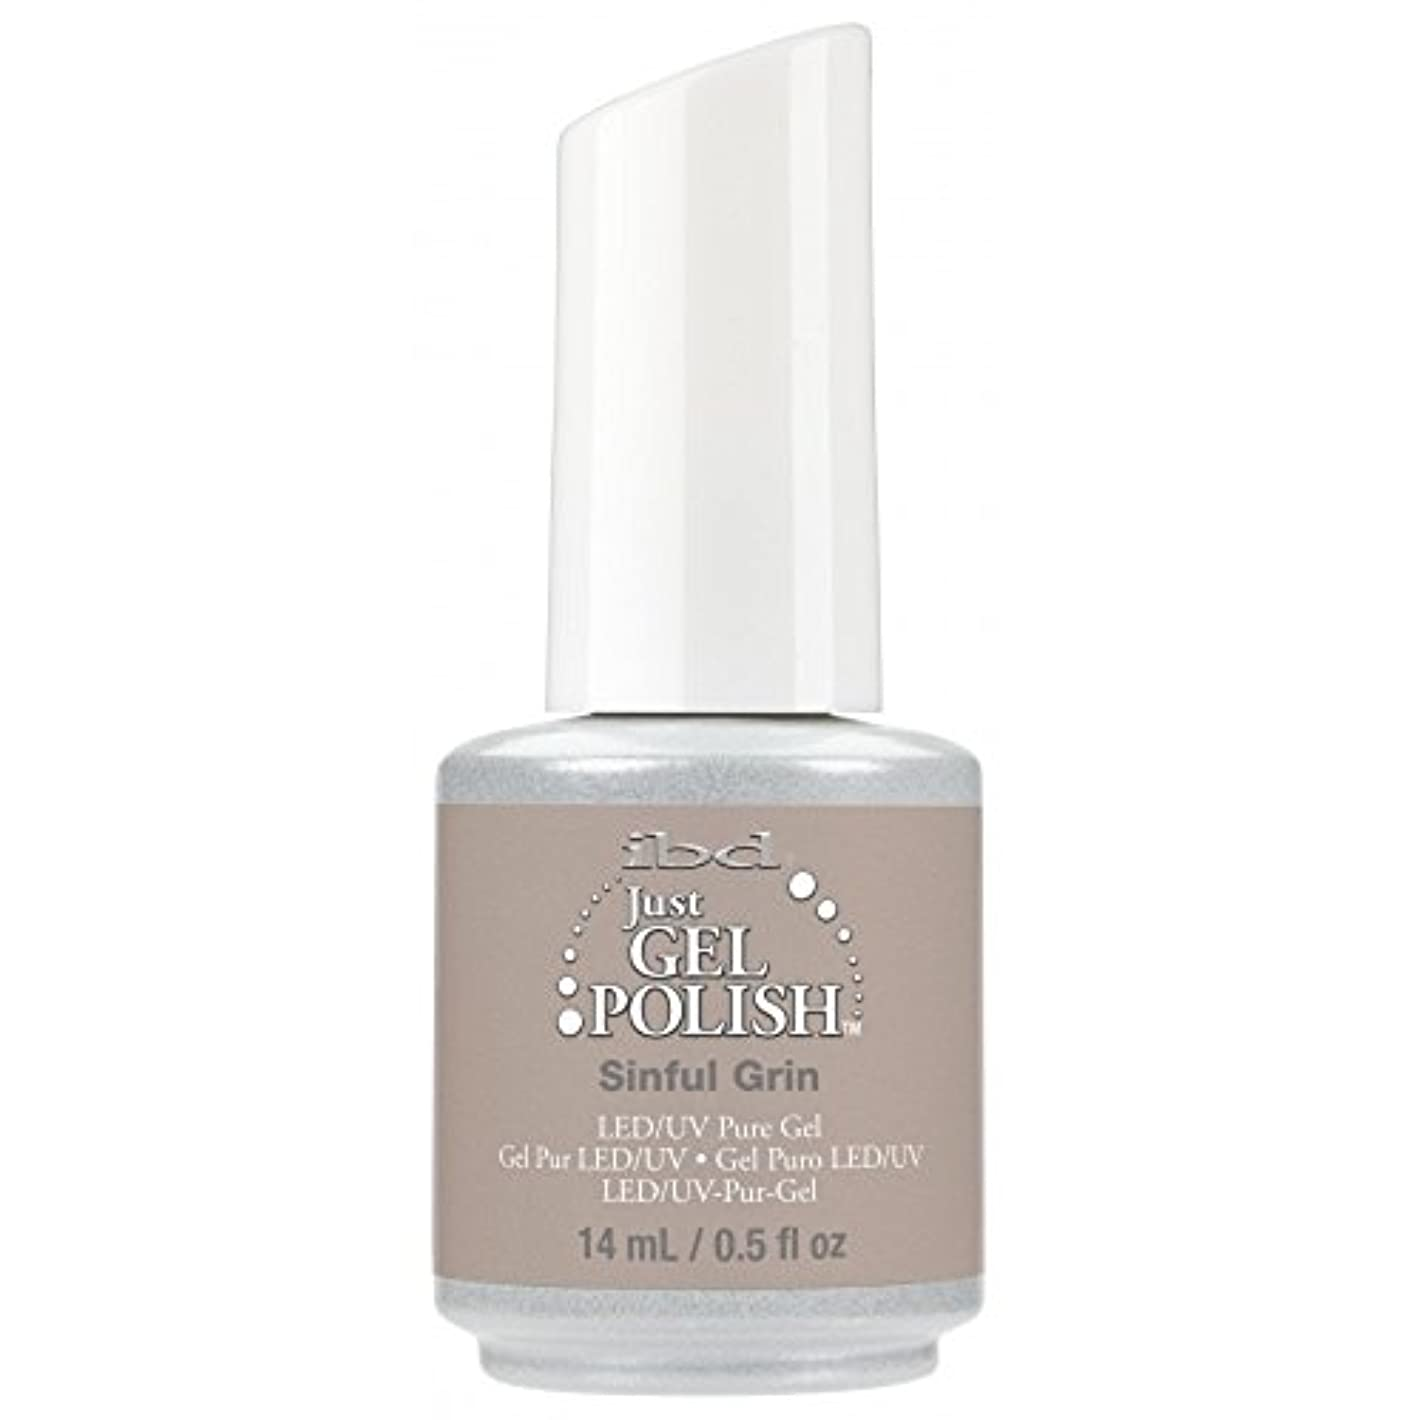 ibd Just Gel Nail Polish - 2017 Nude Collection - Sinful Grin - 14ml / 0.5oz